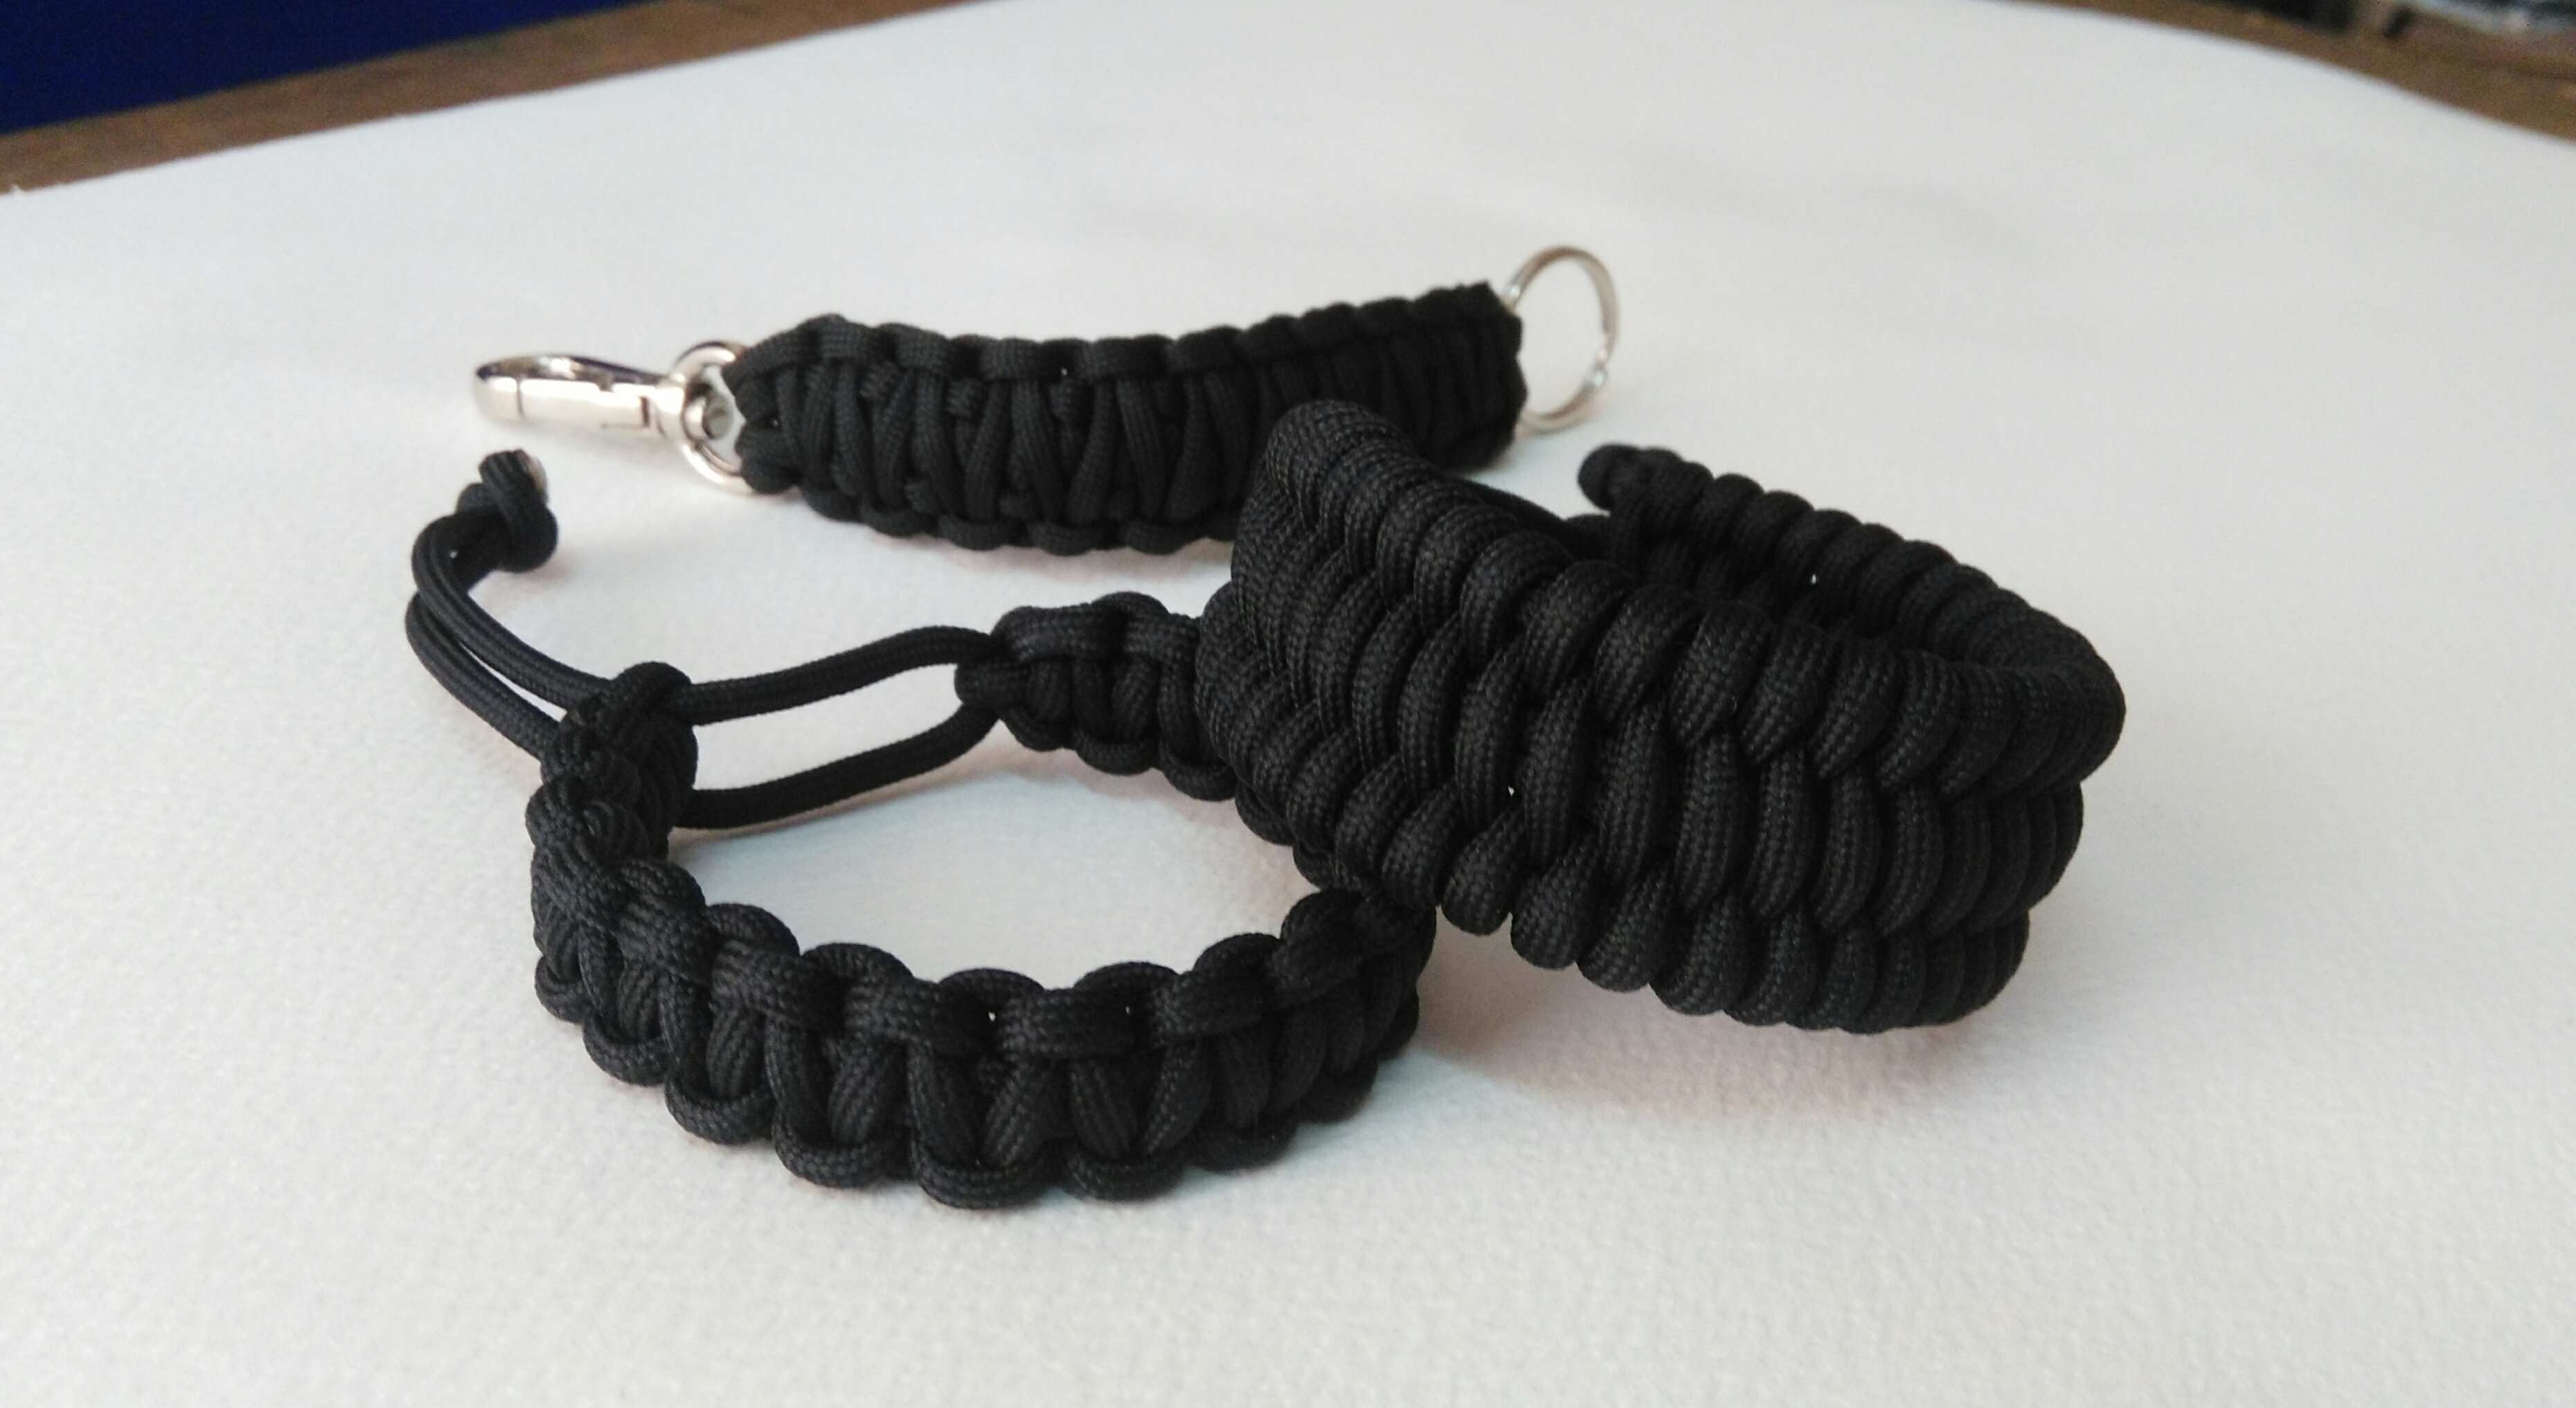 New Paracord Cross Keychain Red /& Black